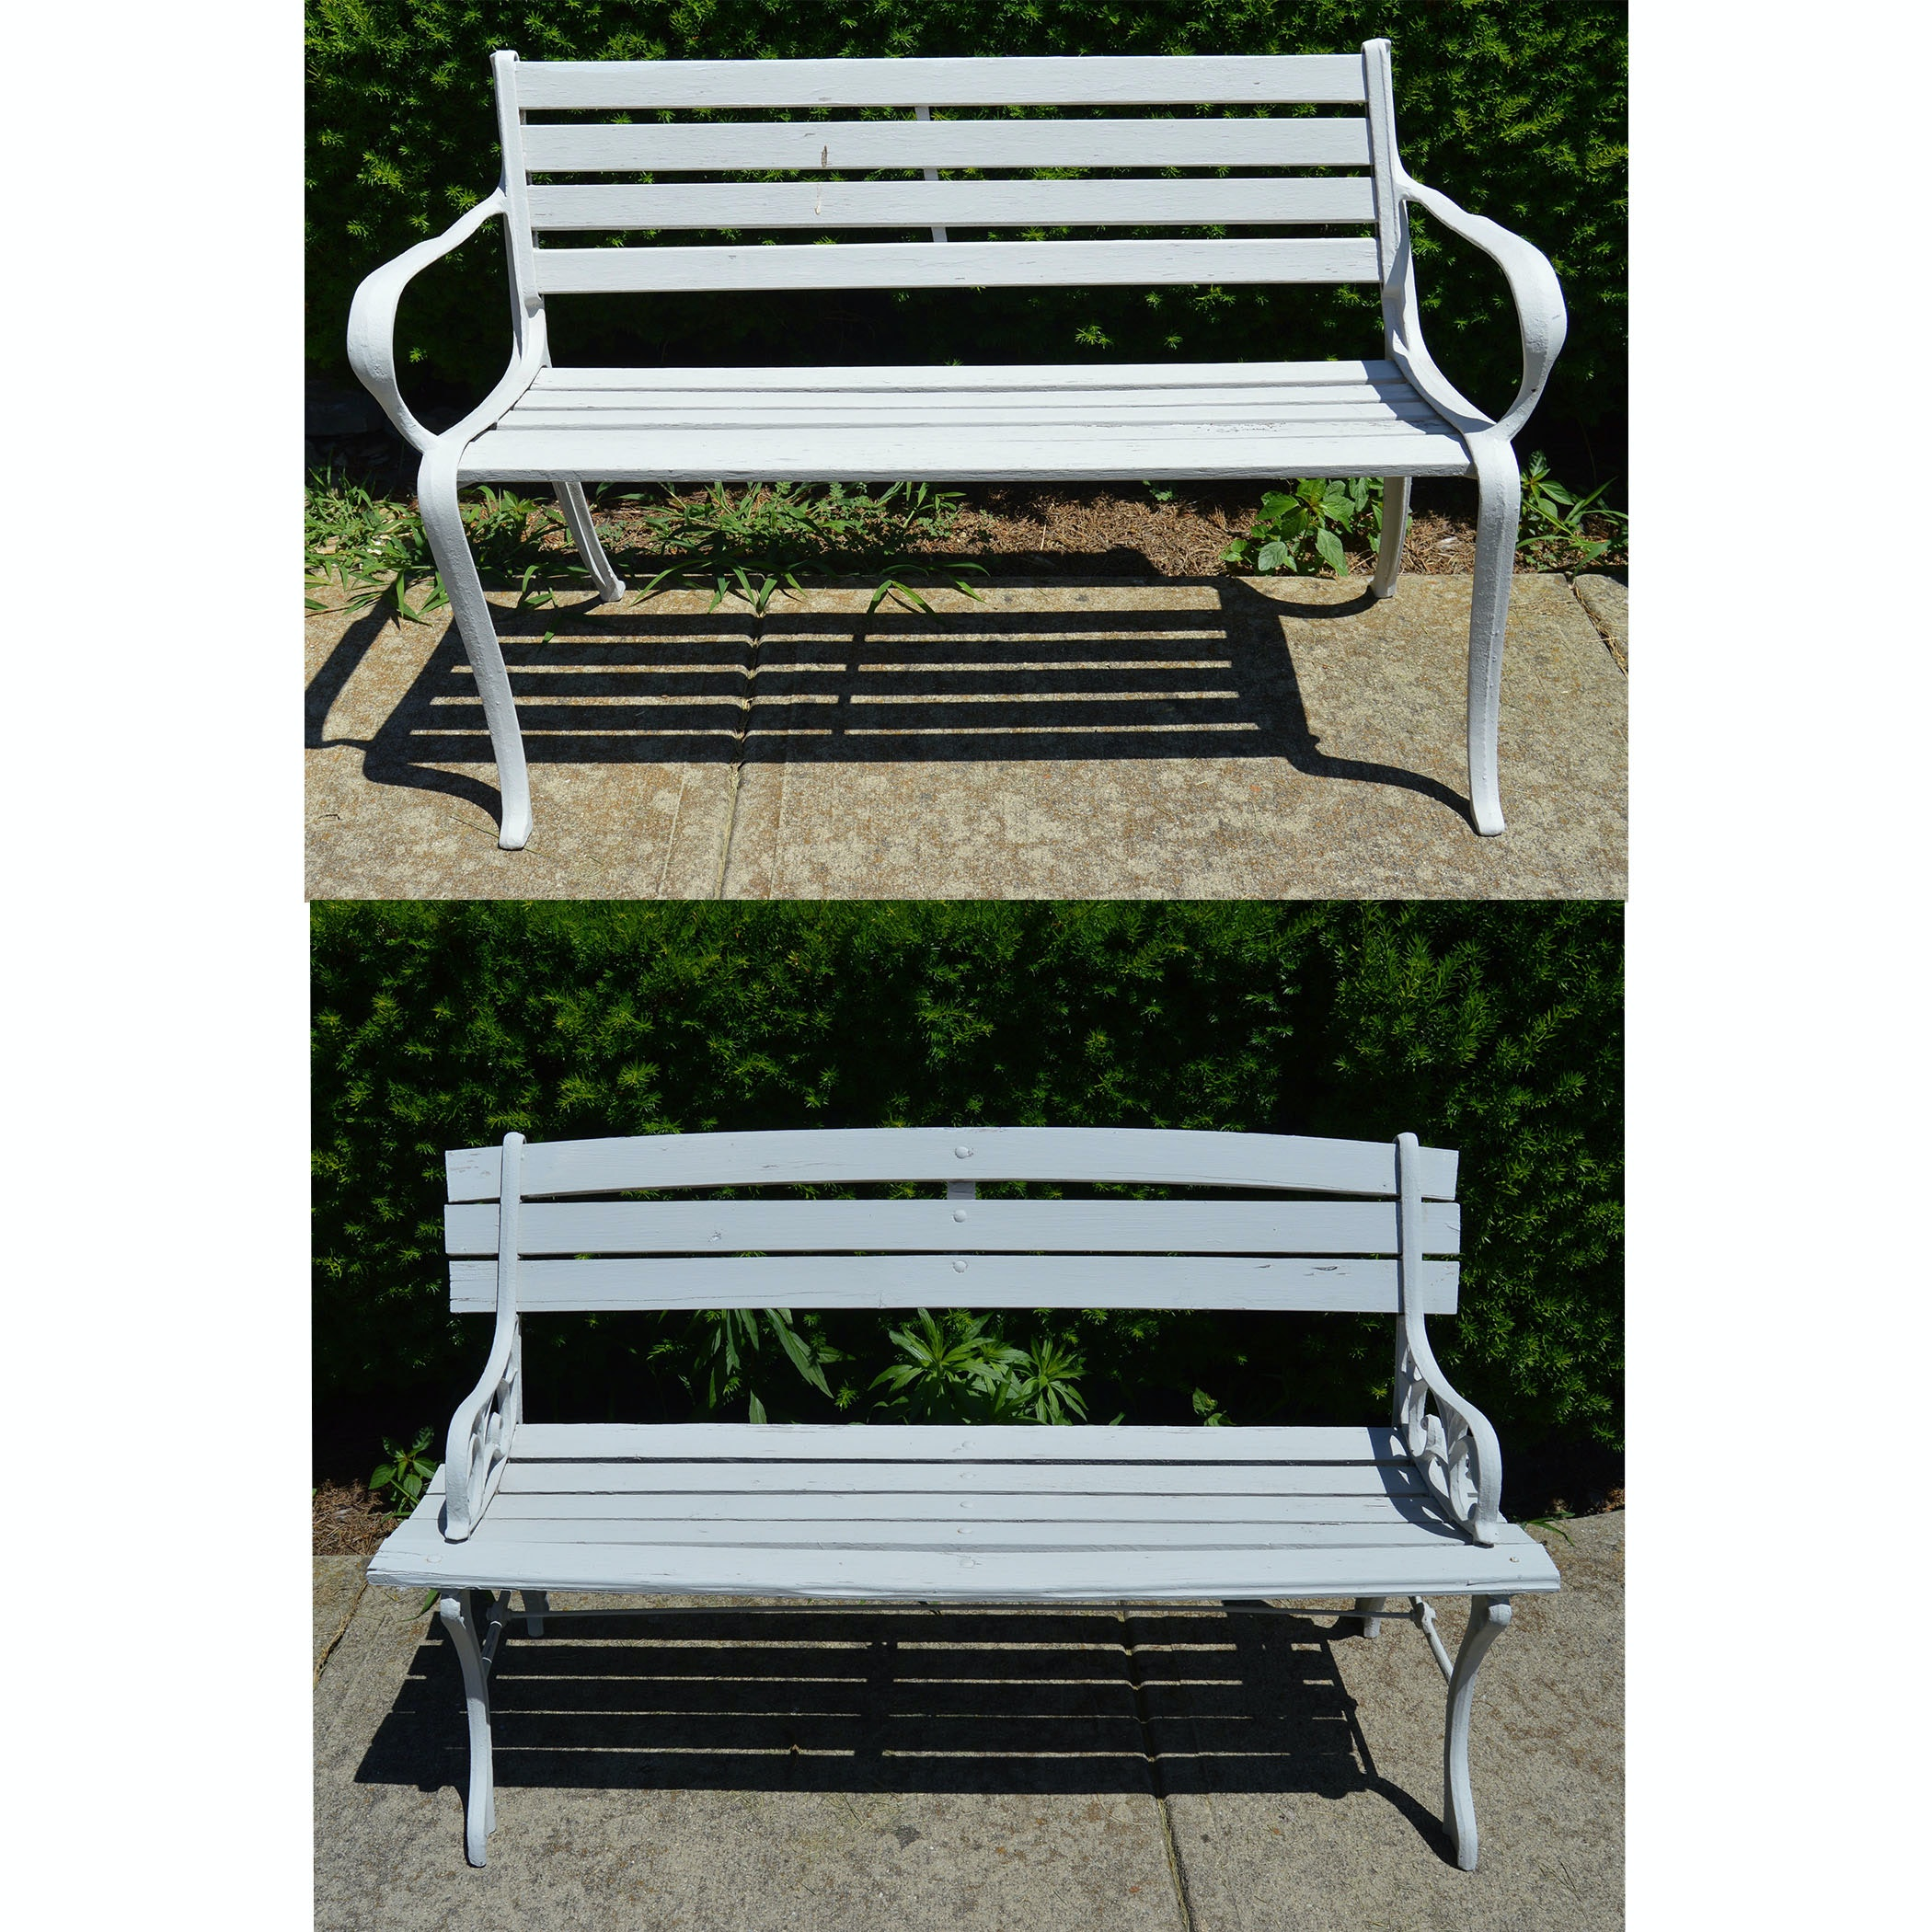 A Pair of Project Piece Wooden Benches